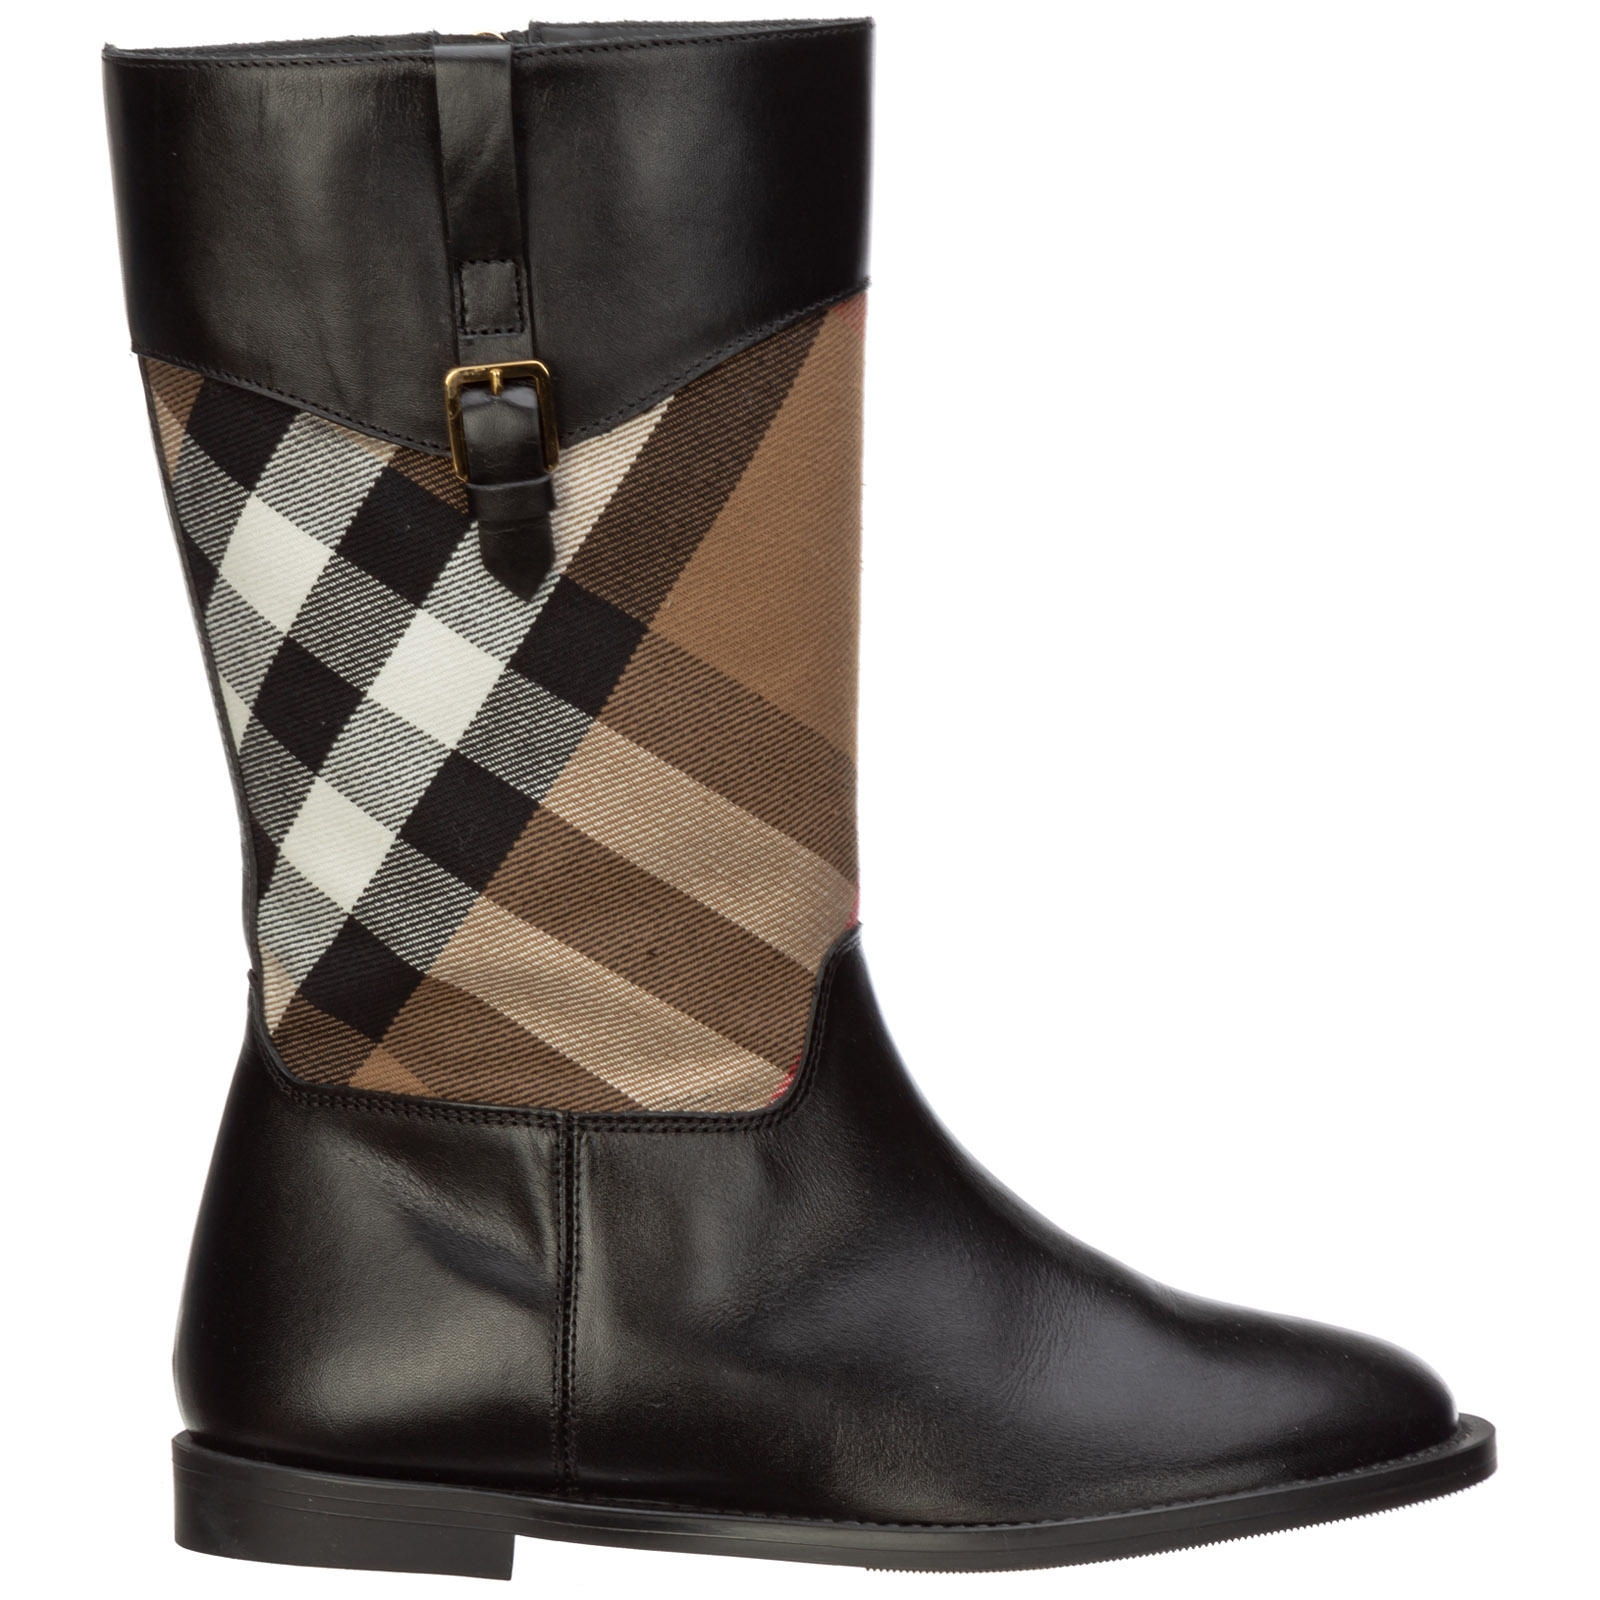 Burberry Girls Shoes Child Boots